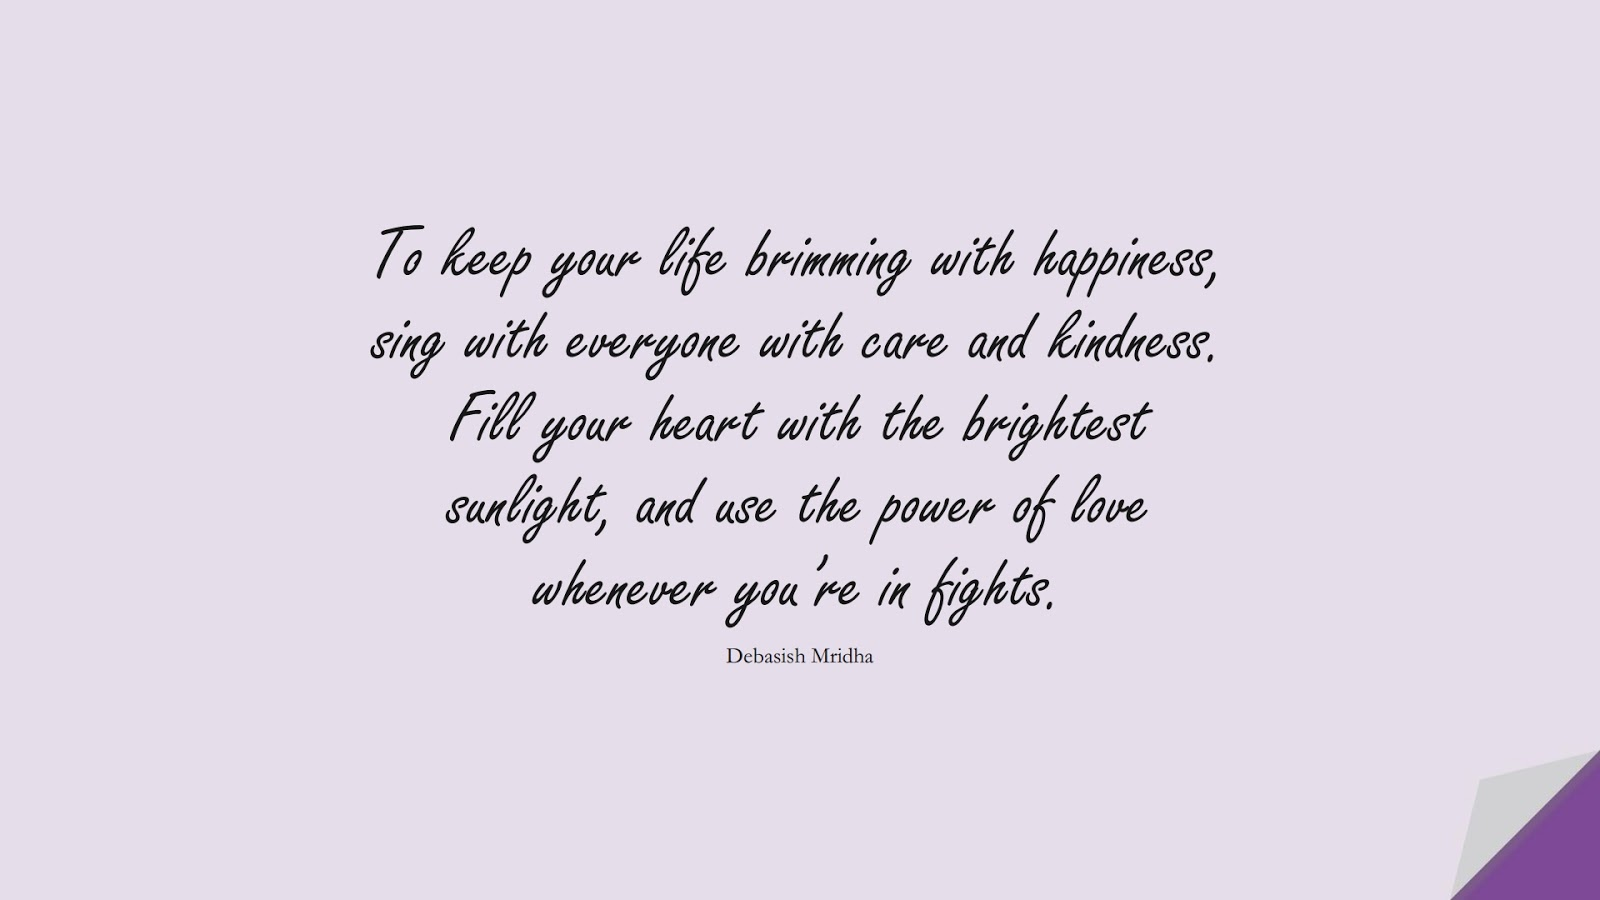 To keep your life brimming with happiness, sing with everyone with care and kindness. Fill your heart with the brightest sunlight, and use the power of love whenever you're in fights. (Debasish Mridha);  #HappinessQuotes